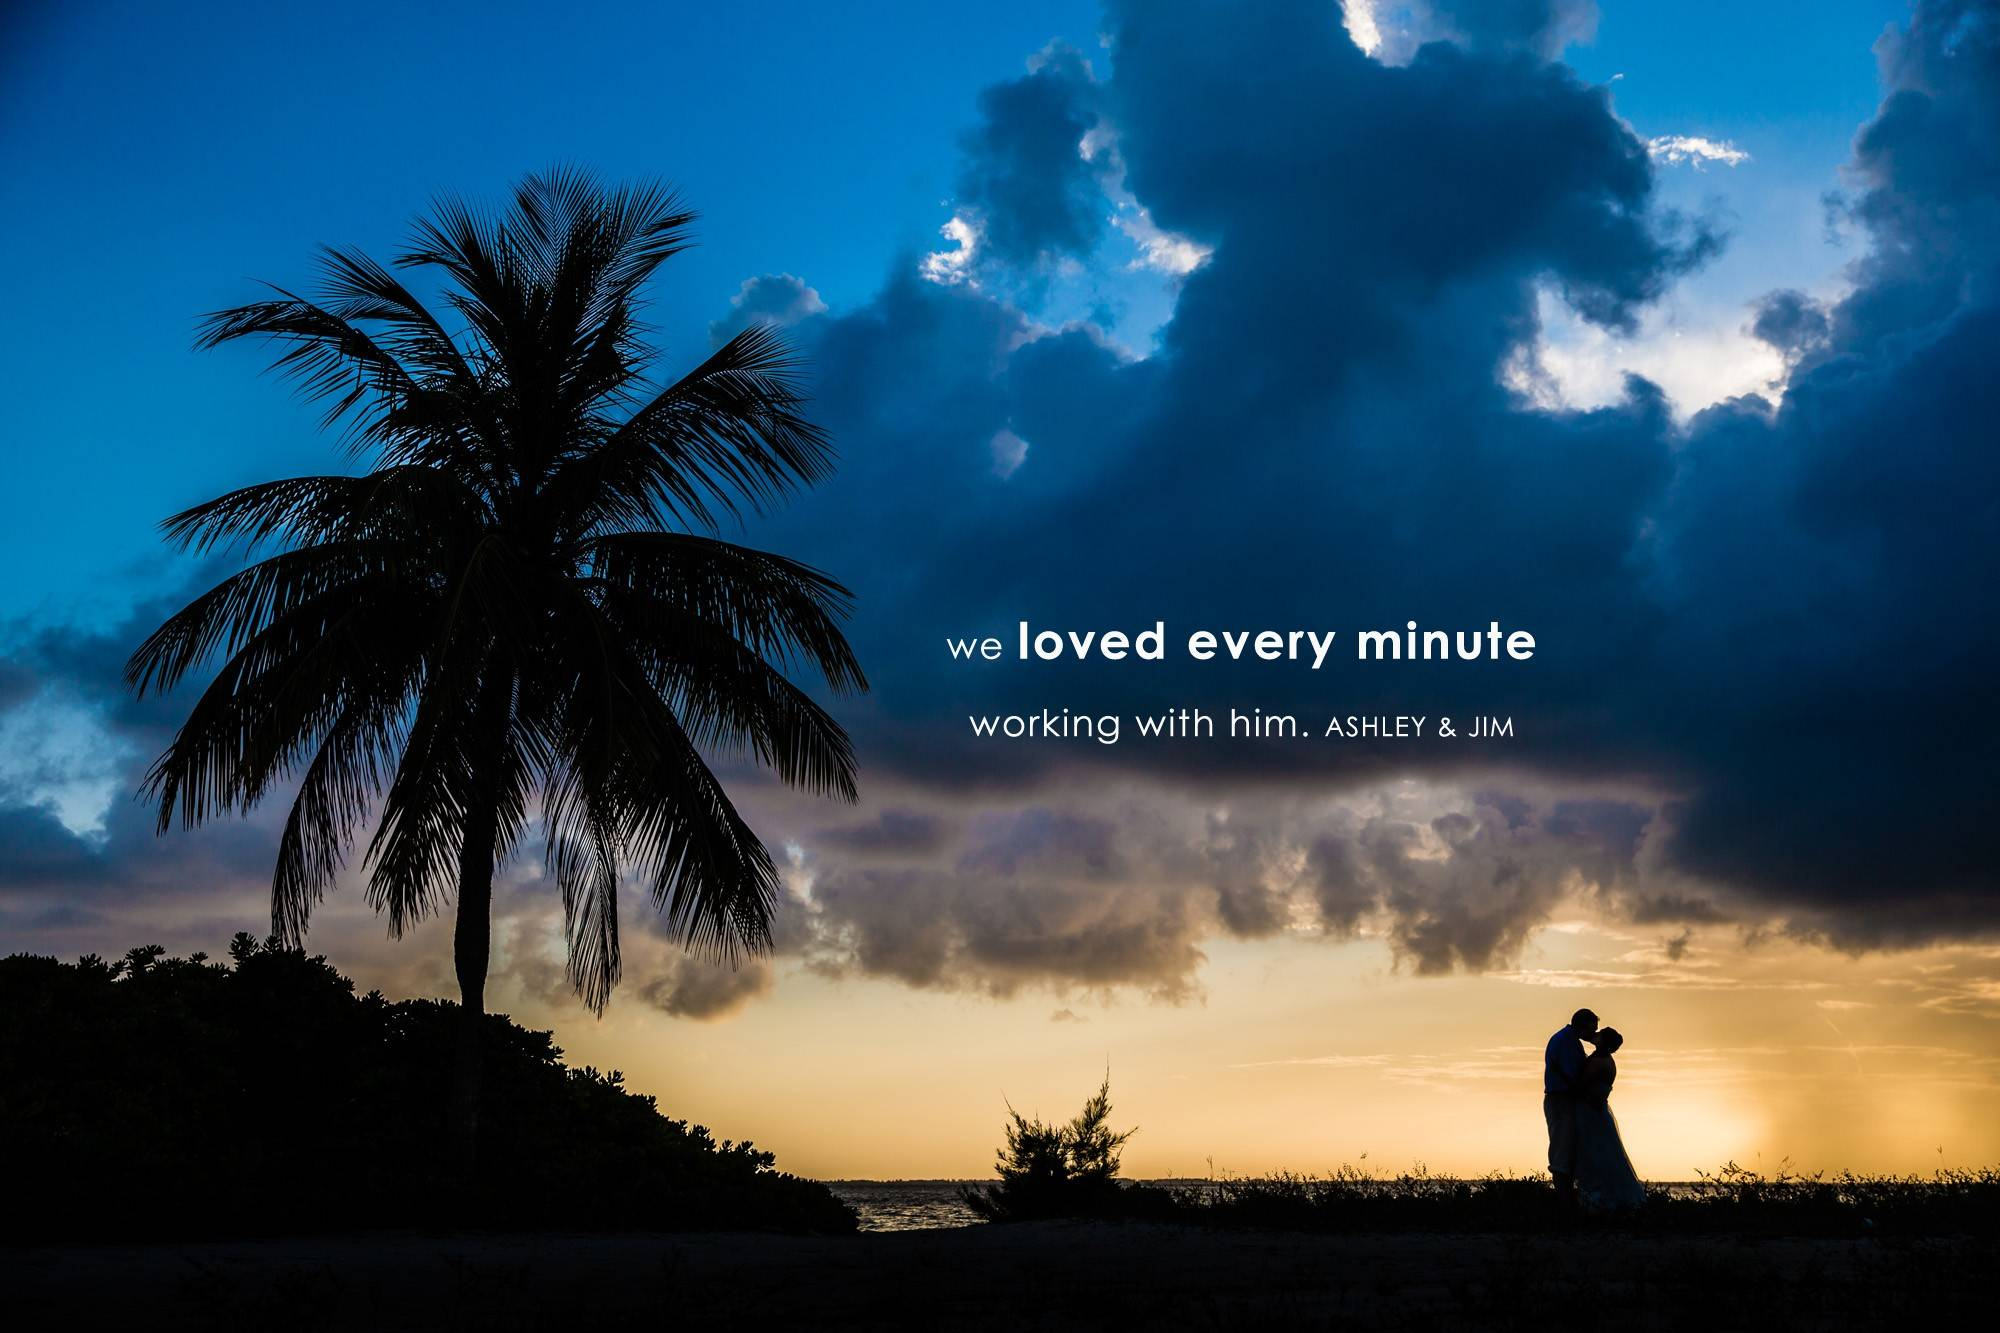 Beautiful sunset from a destination wedding on Grand Cayman Island by NH wedding photographer Eric McCallister Photography.